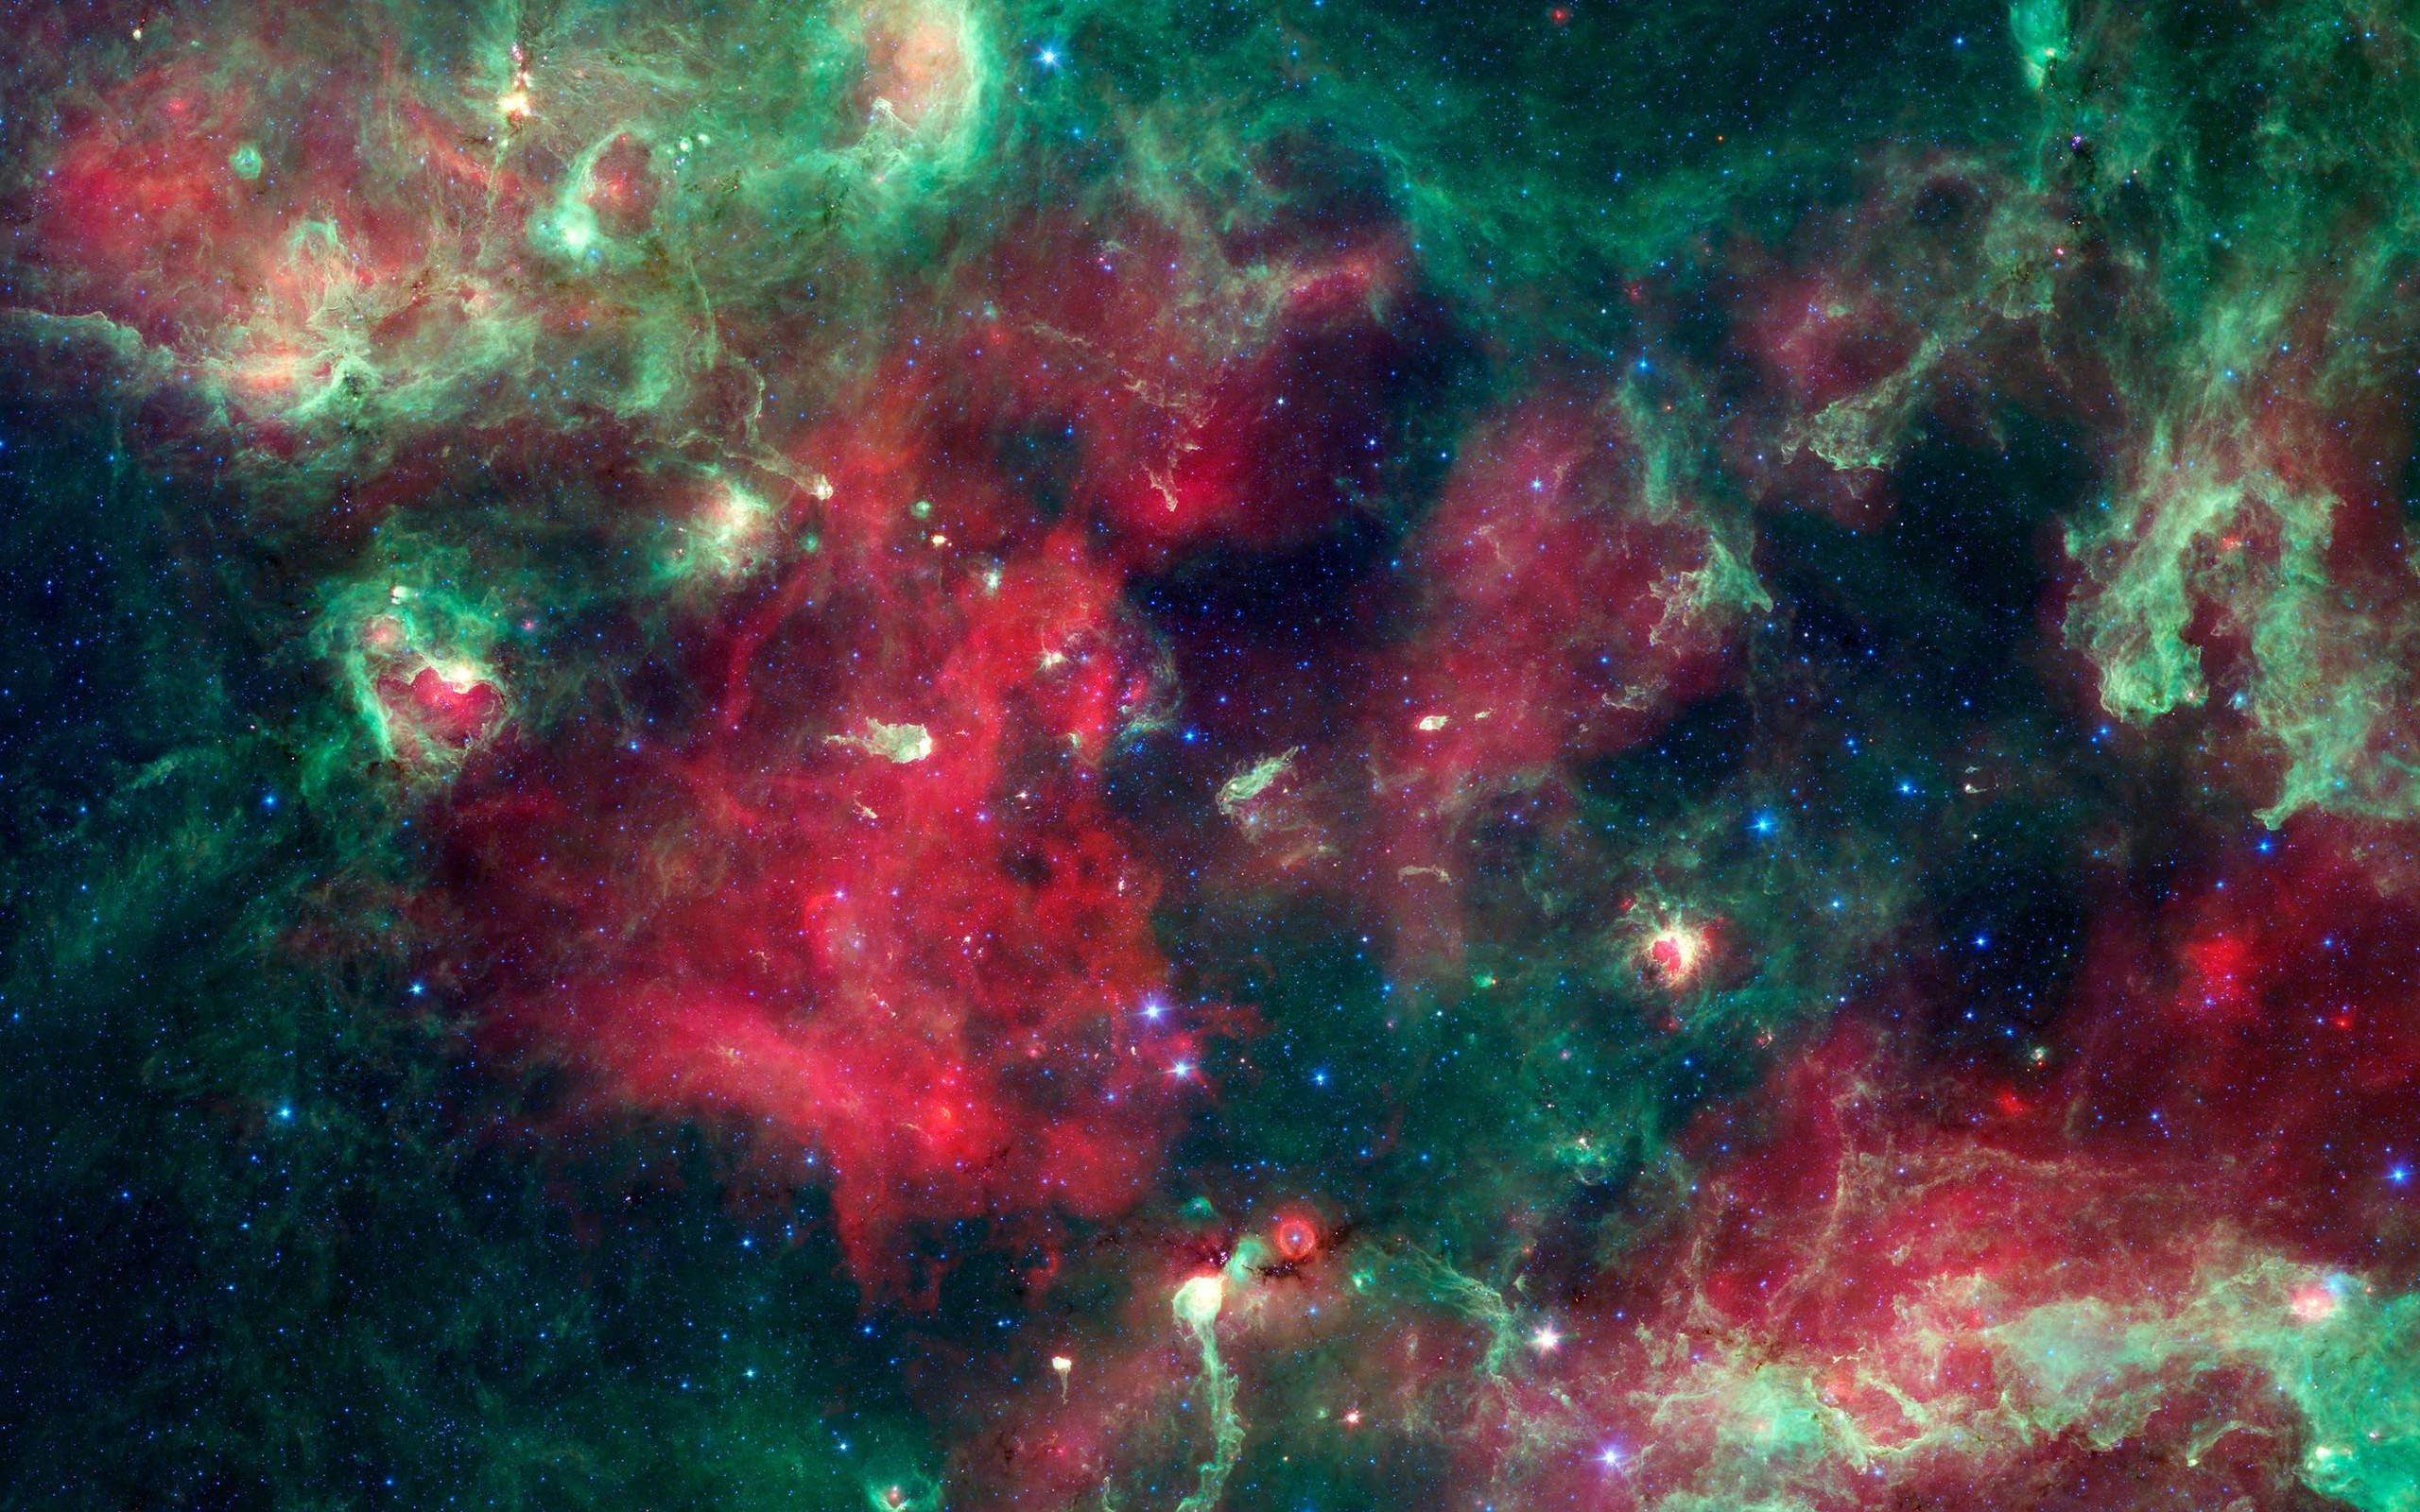 2560x1600 Sci Fi Nebula 13086 HD Wallpaper Pictures | Top Wallpaper Gallery .